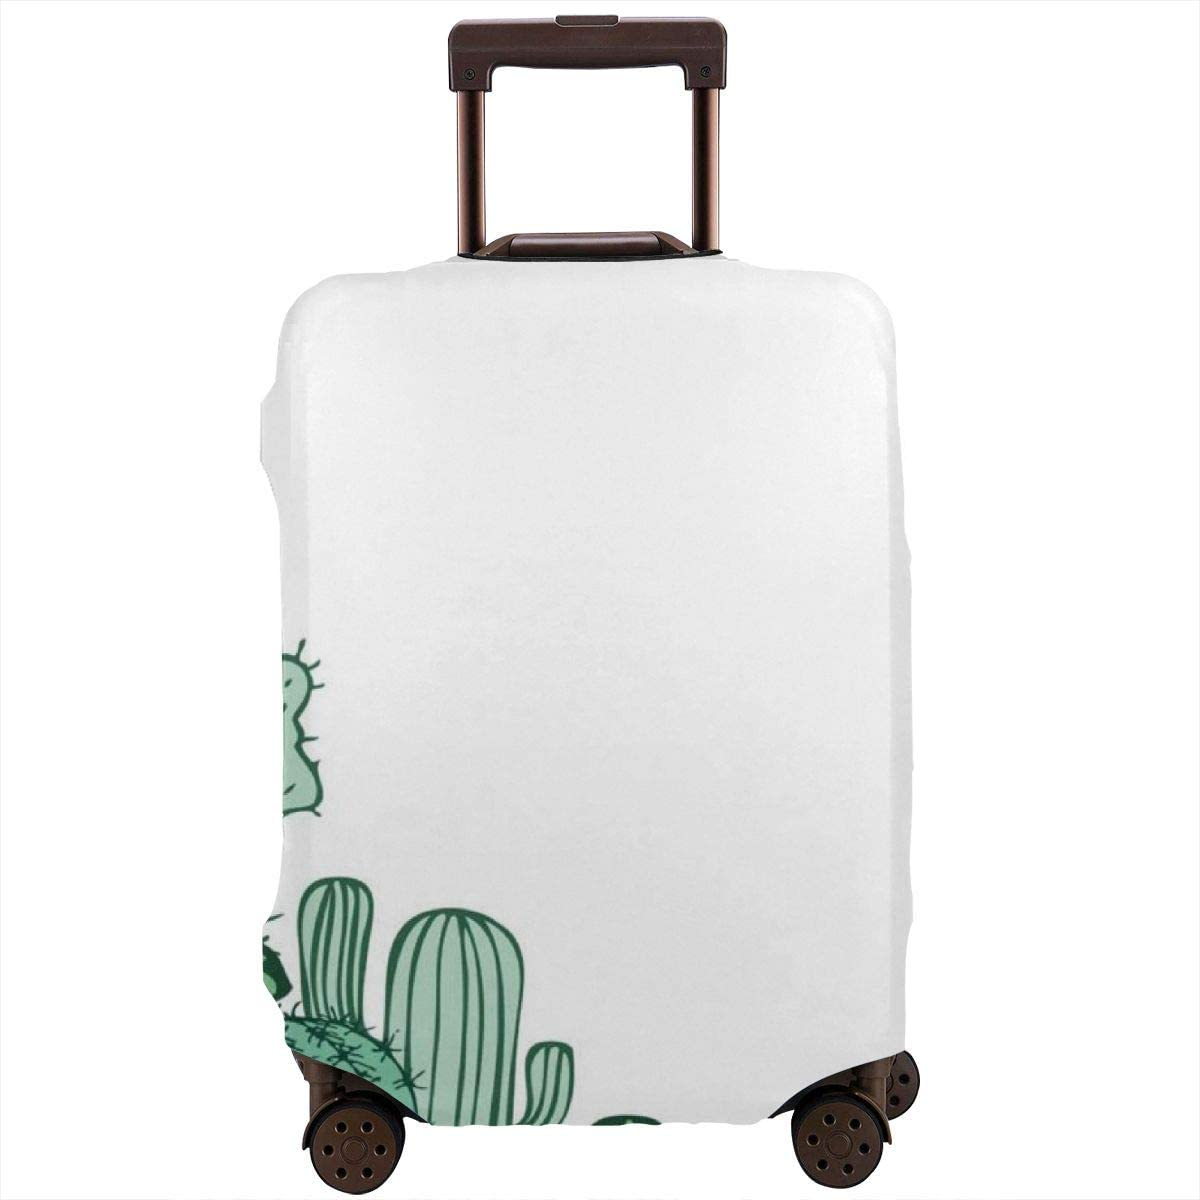 JHNDKJS Cactus Decor Travel Luggage Cover Baggage Suitcase Protector Fit for 12-18 Inch Luggage